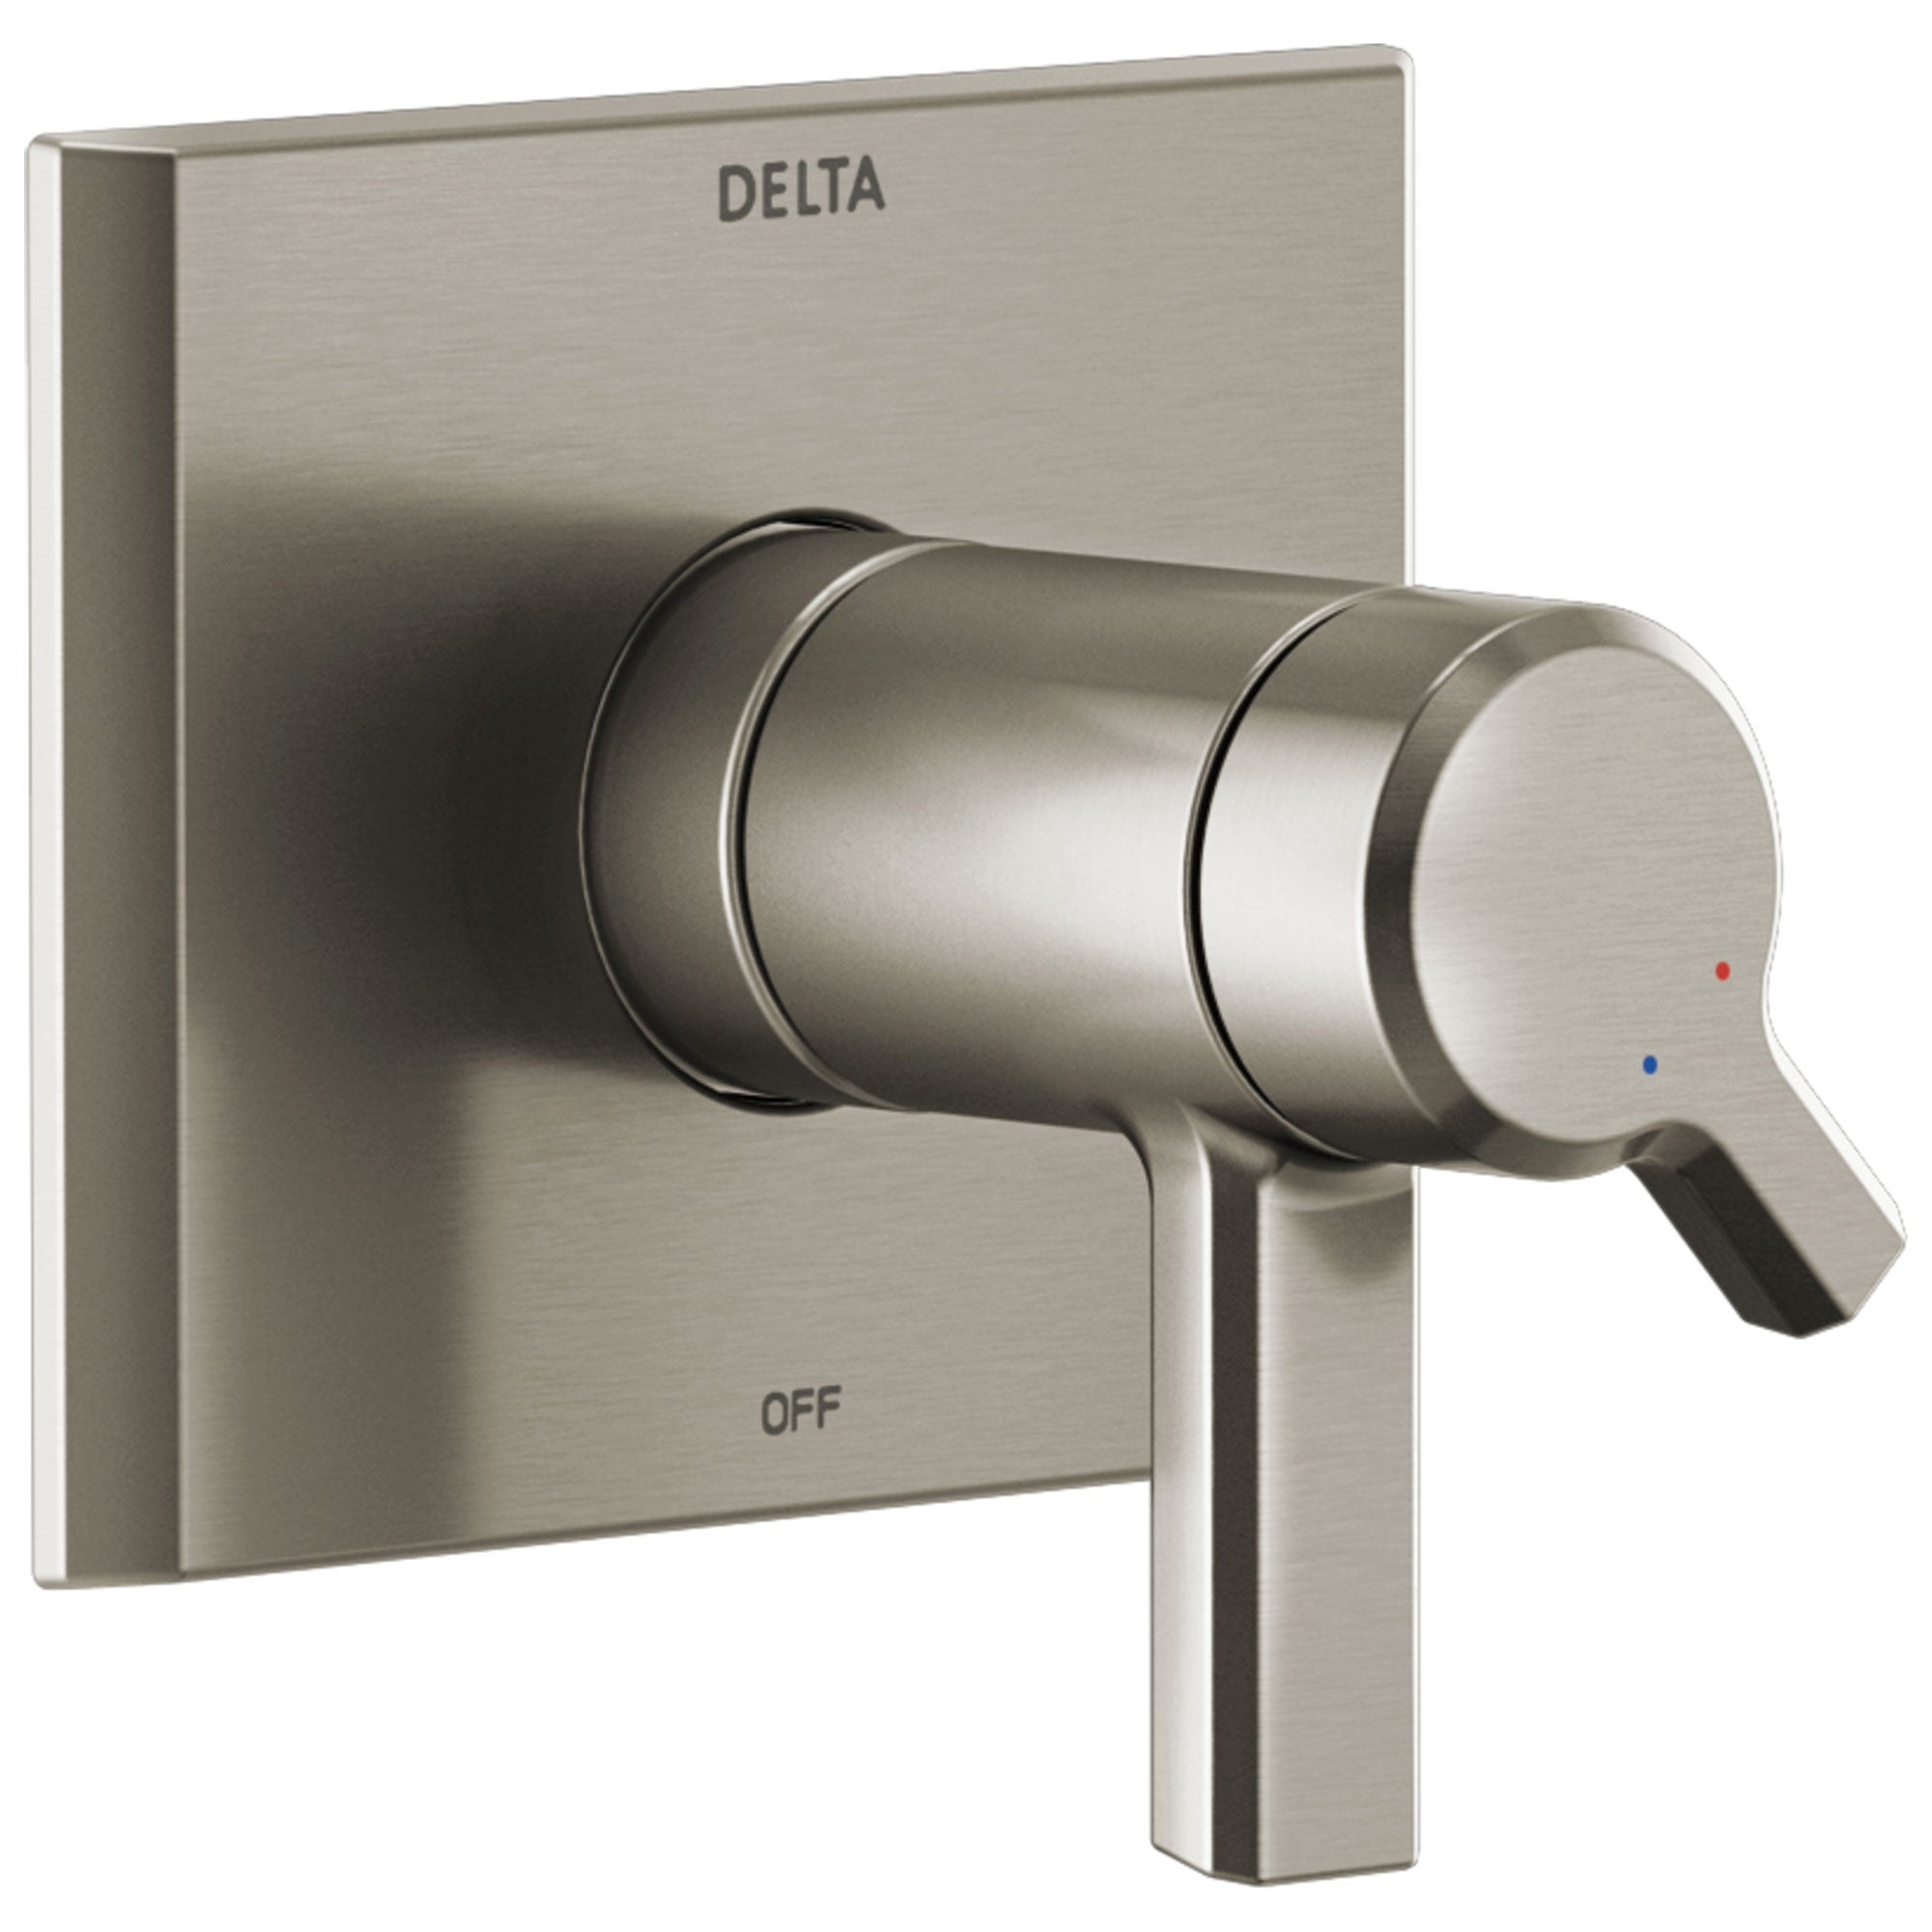 Delta Pivotal Stainless Steel Finish TempAssure 17T Series Shower Faucet Control Only Trim Kit (Requires Valve) DT17T099SS